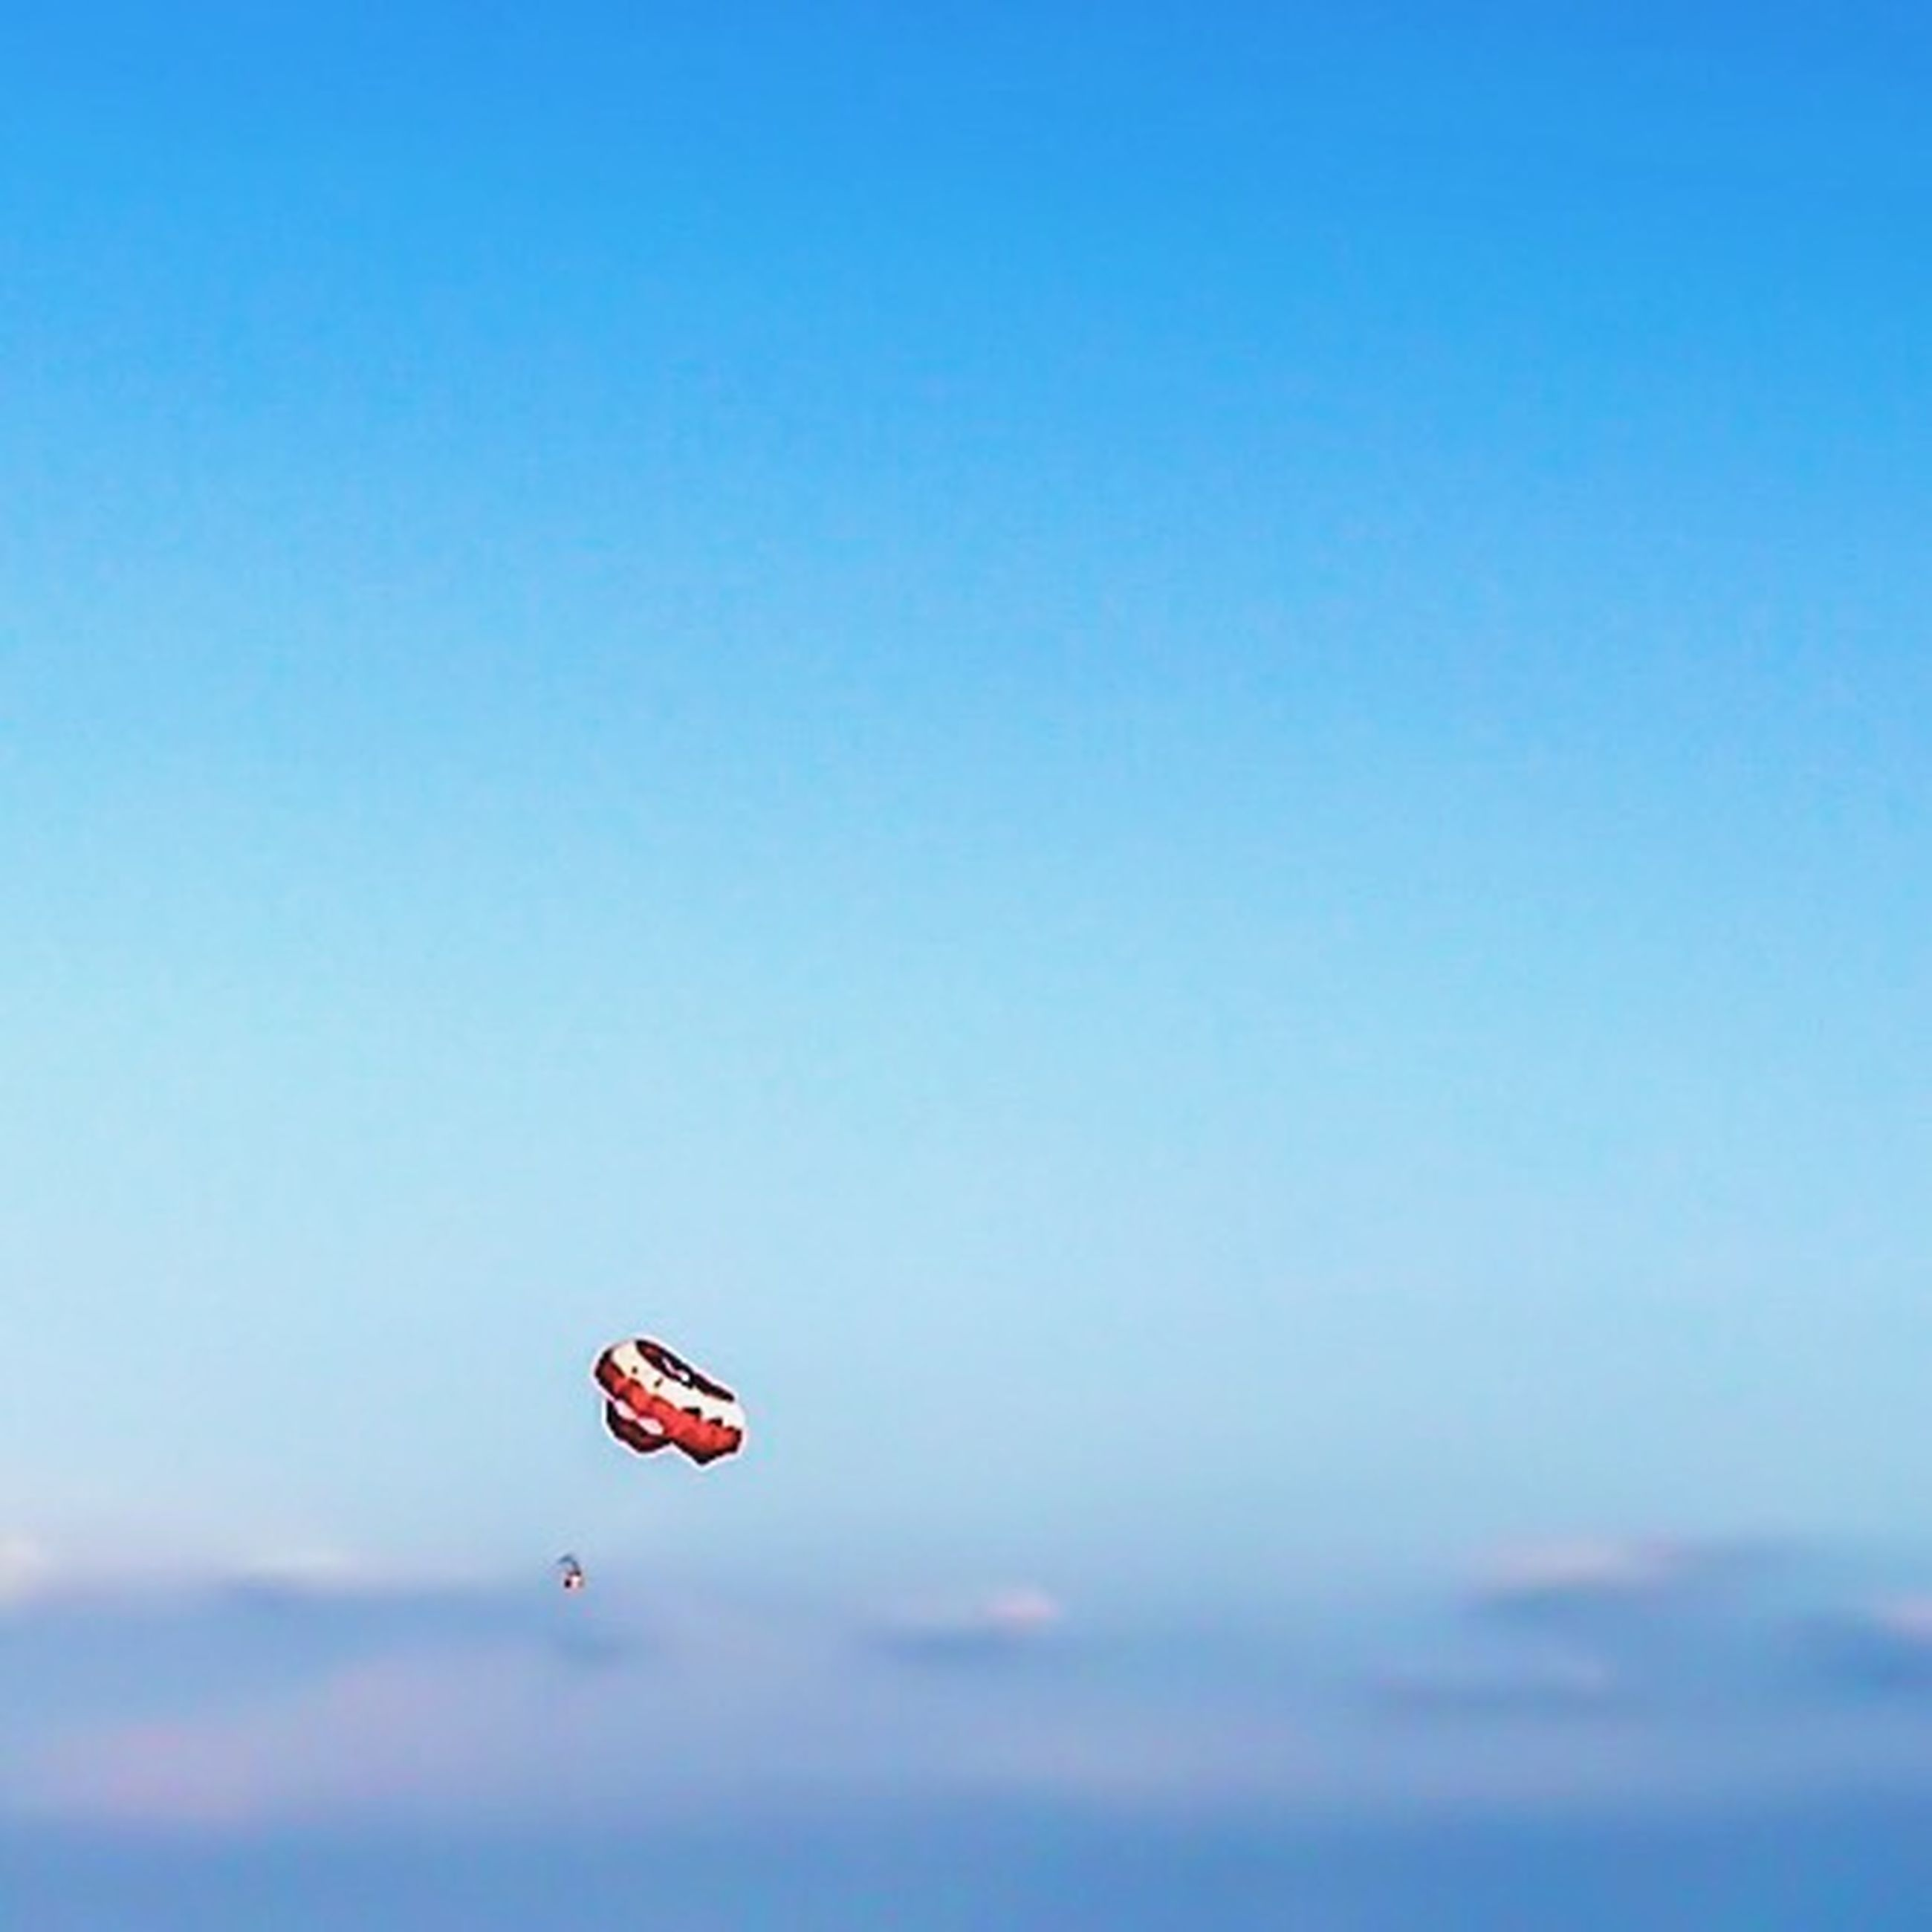 mid-air, flying, copy space, transportation, blue, low angle view, clear sky, adventure, sky, extreme sports, nature, parachute, motion, red, outdoors, day, beauty in nature, exhilaration, paragliding, insect